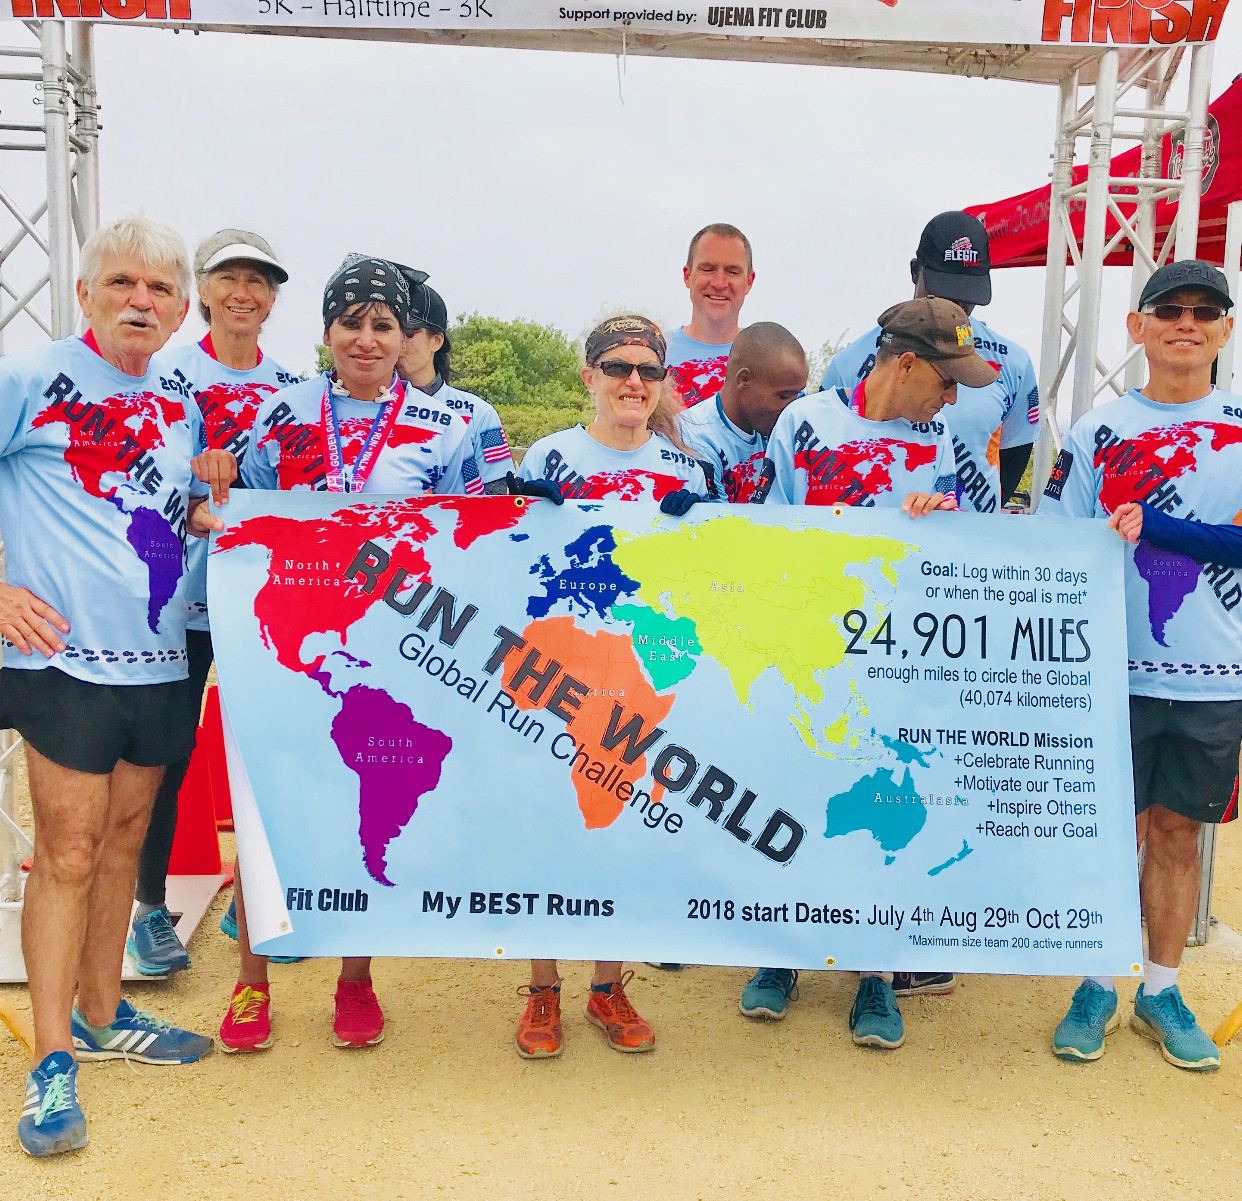 The Run The World Global Run Challenge Team Just finished logging in 24,901 Miles in just under 37 Days